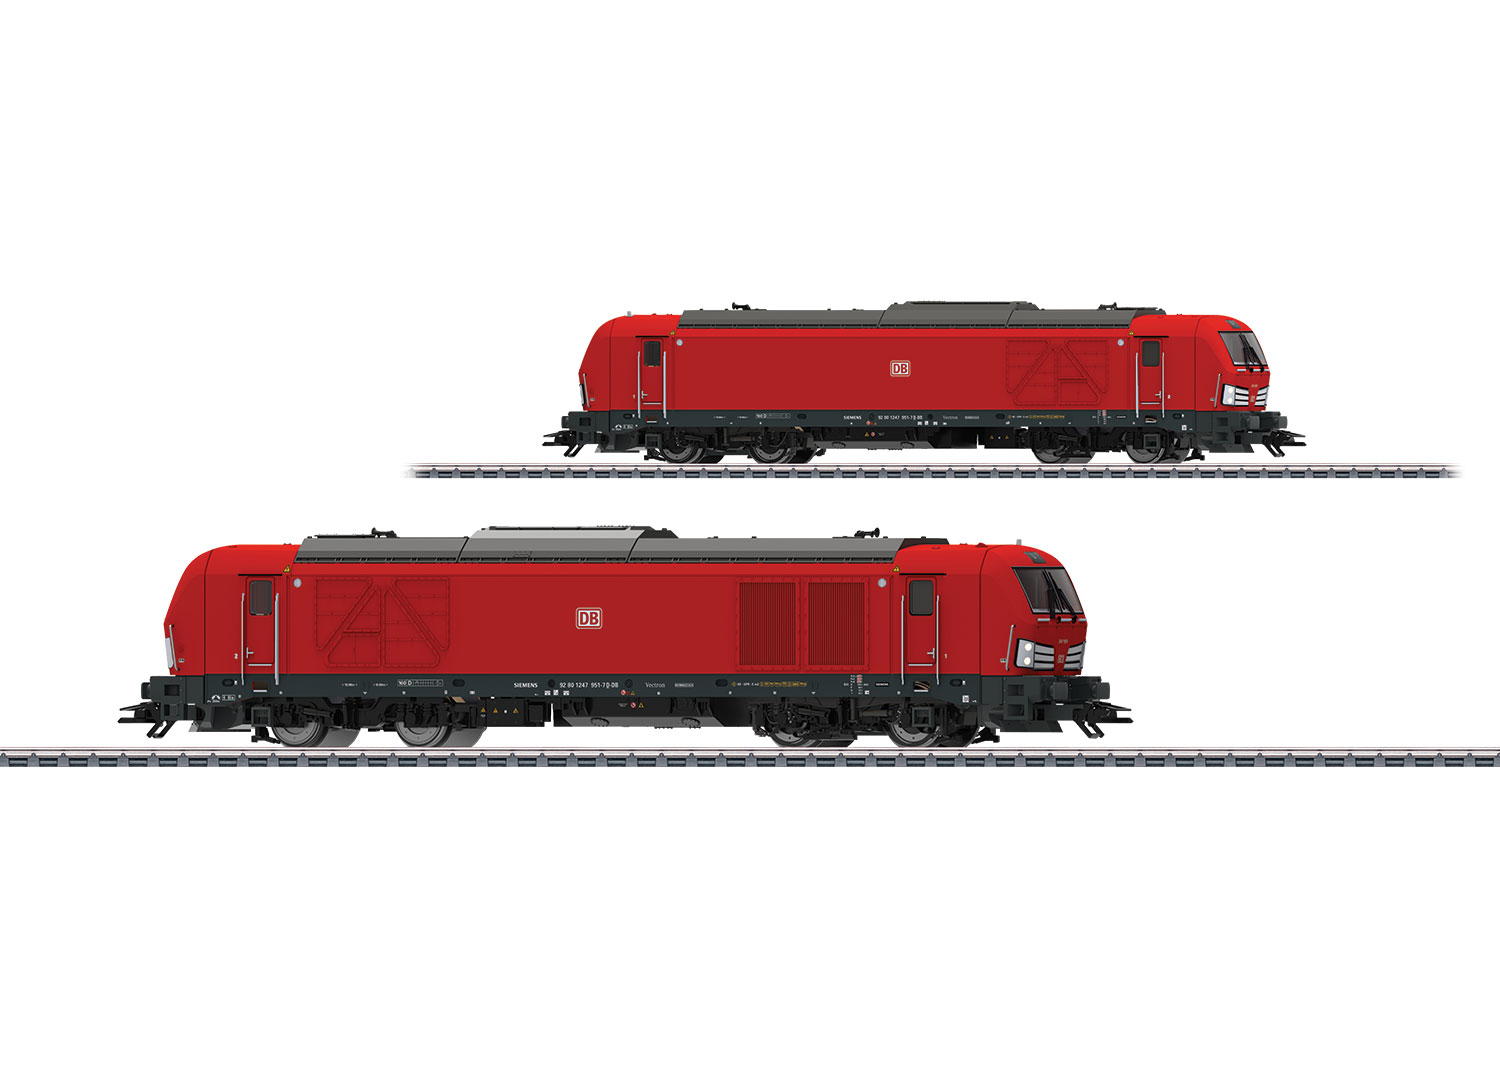 The new form of the Locomotive 2017-2018 year 85